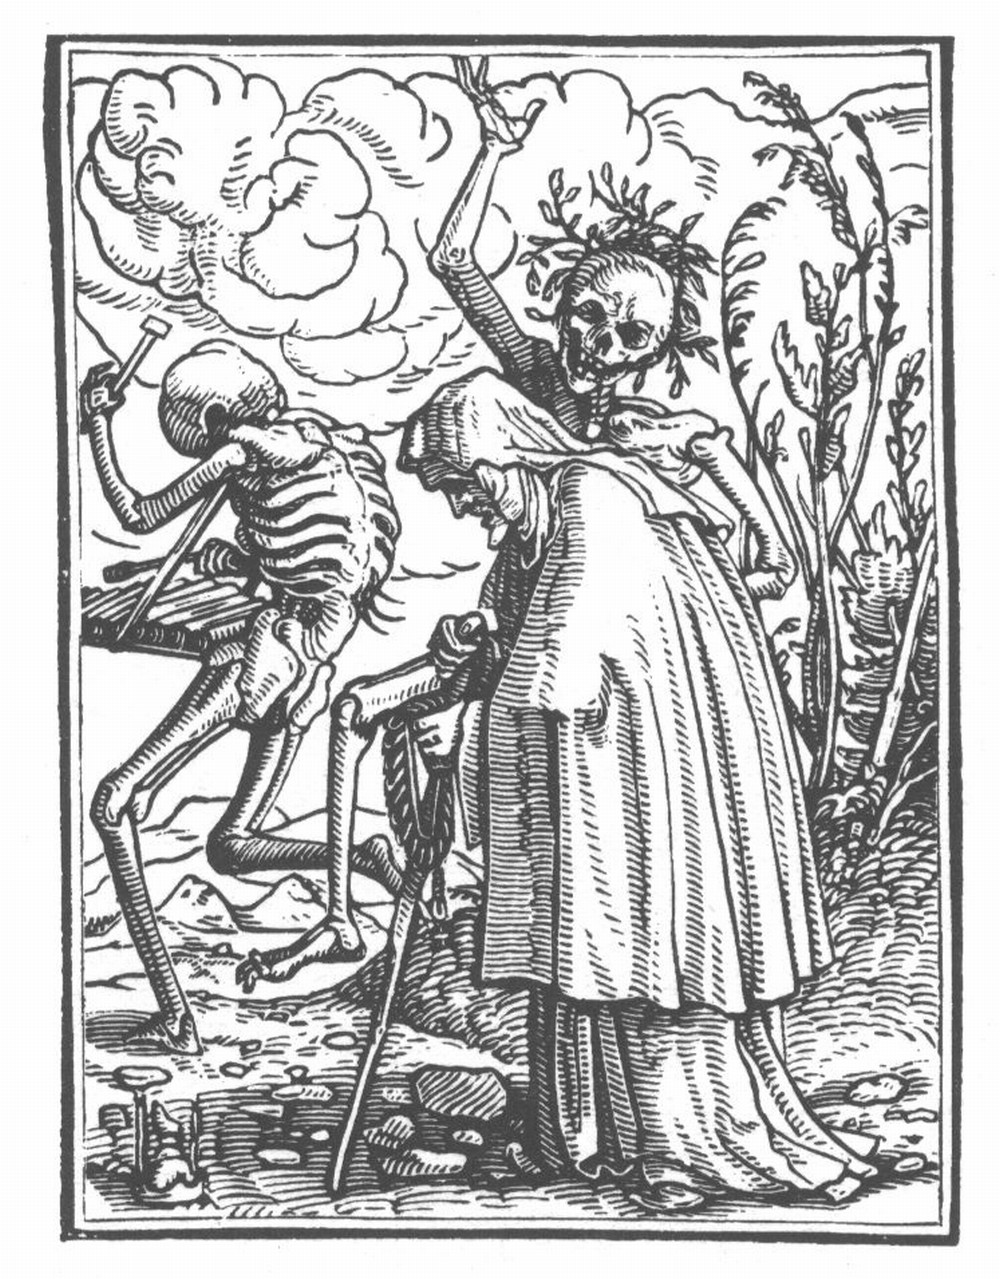 Black and White: Hans Holbein's Totentanz